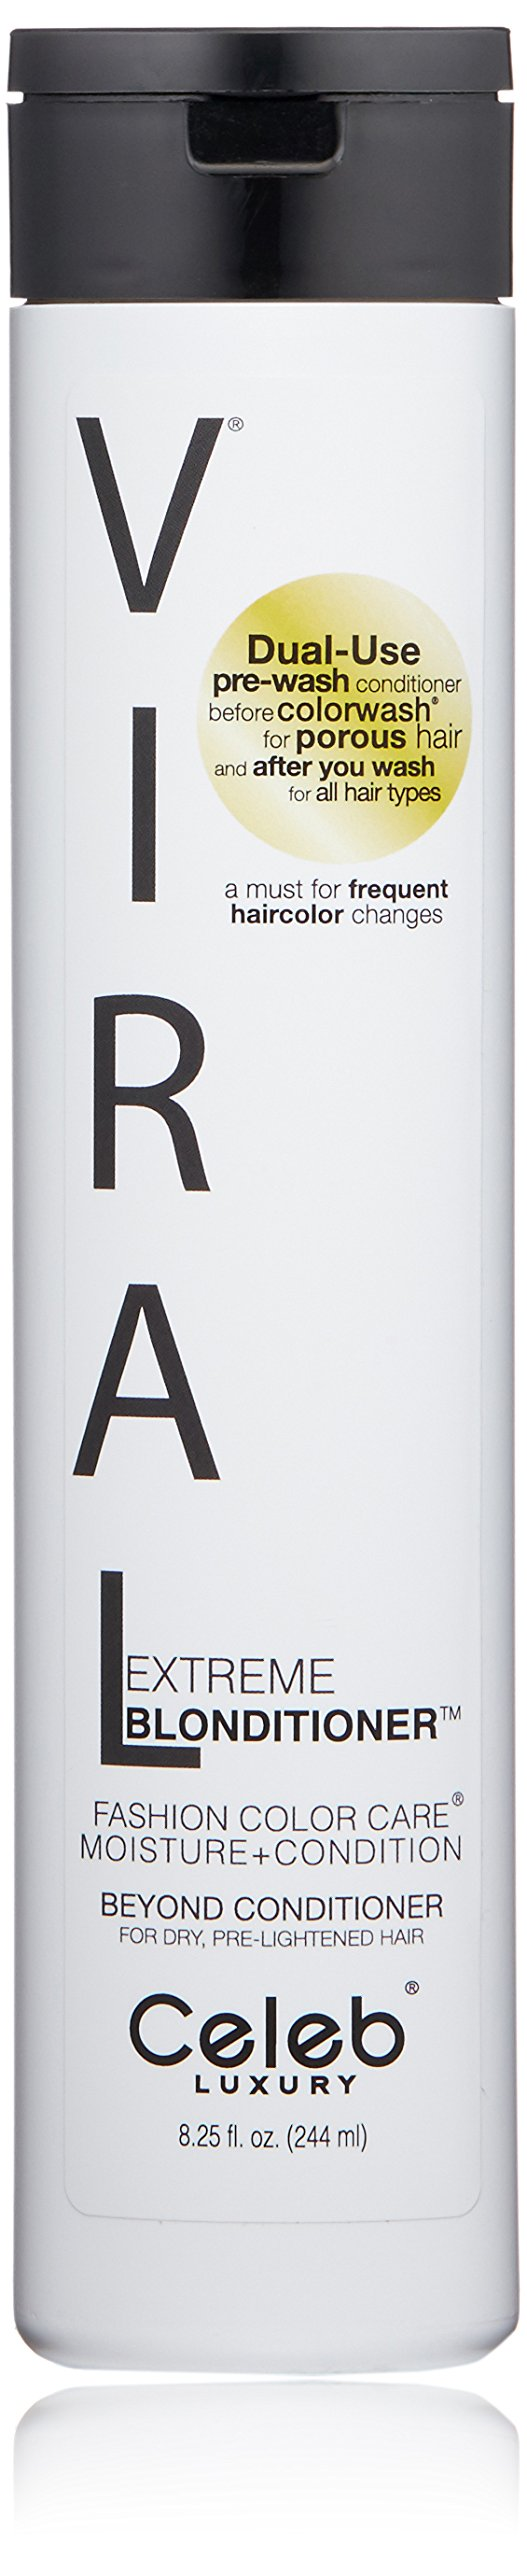 Viral Blonditioner Dual-Use Conditioner, 8.25oz